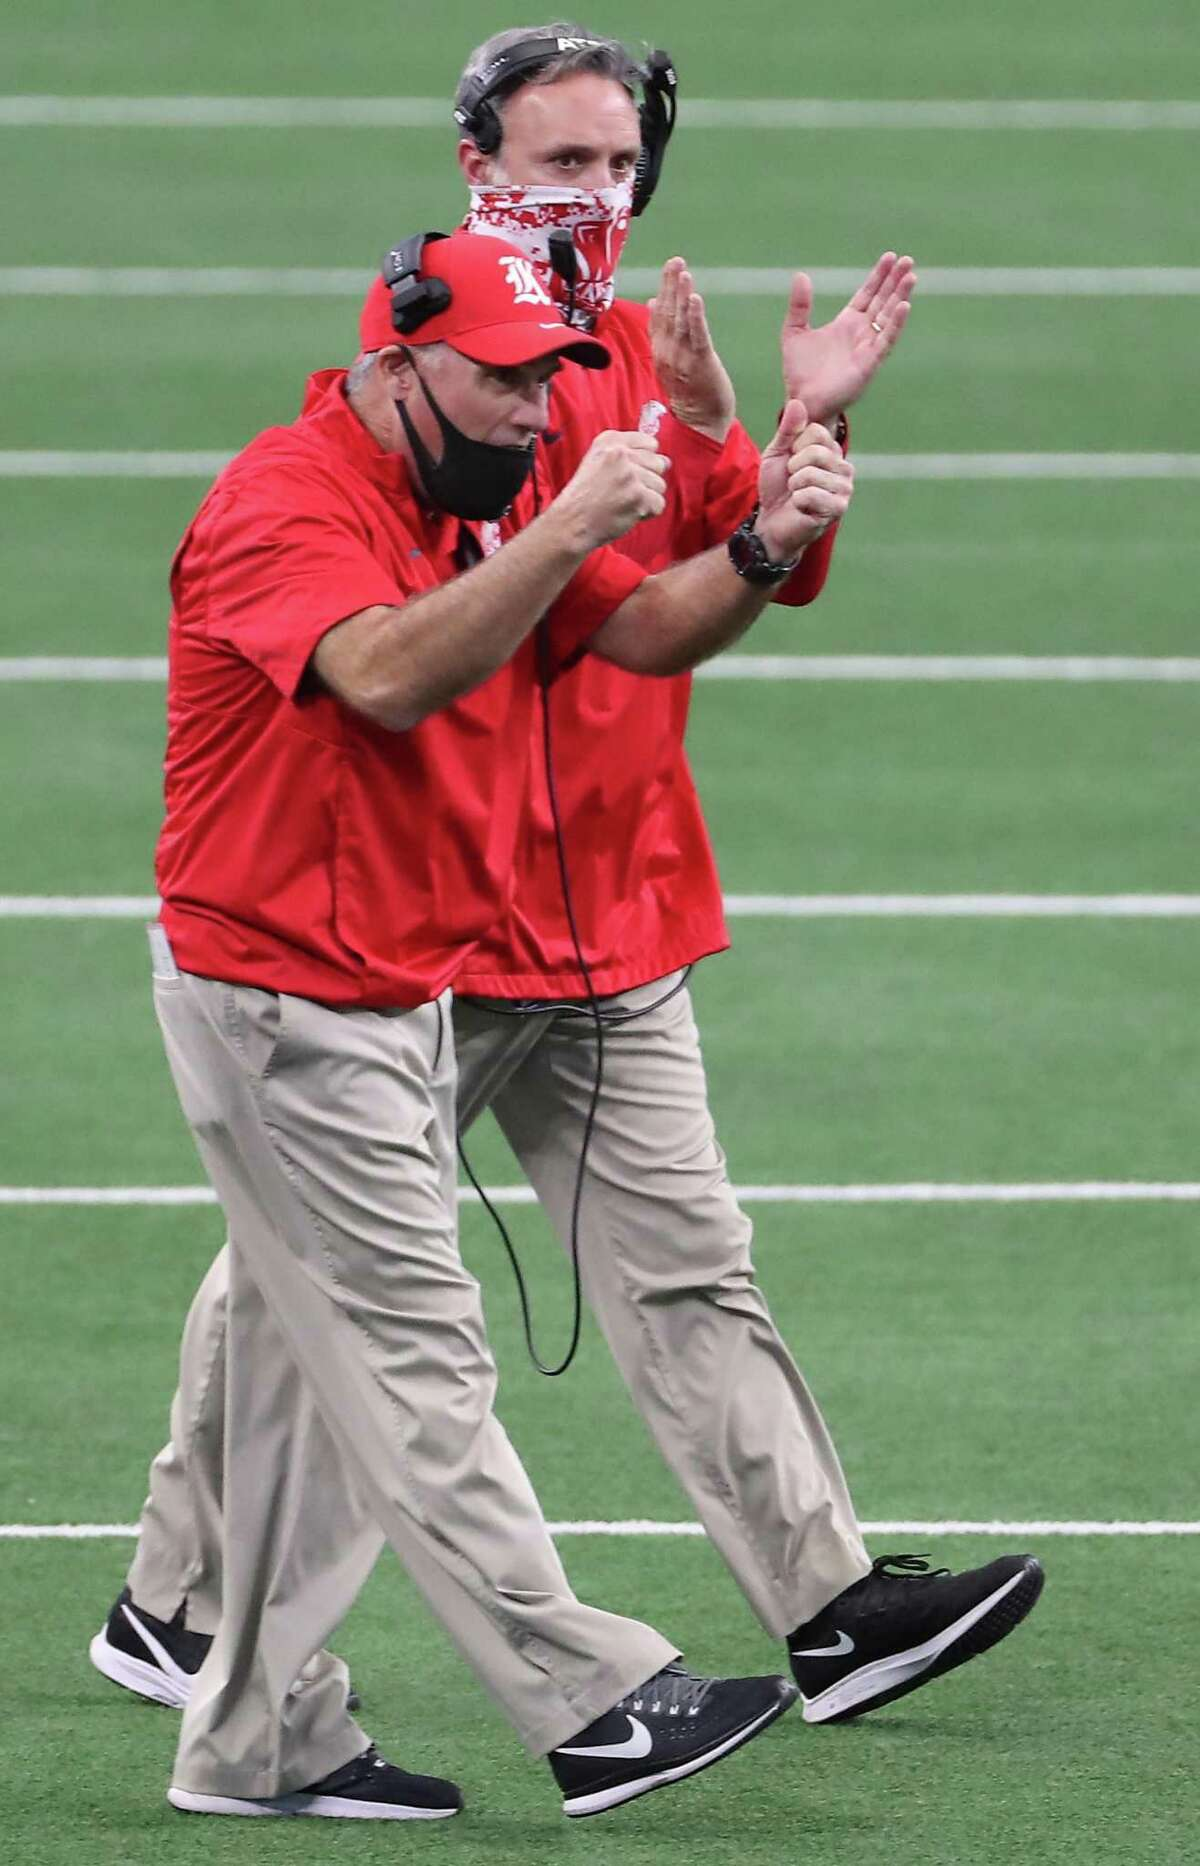 Katy head coach Gary Joseph celebrates running back Isaiah Smith's 55-yard touchdown run against Cedar Hill during the first half of the Class 6A Division II UIL State Championship high school football game at AT&T Stadium Saturday, Jan. 16, 2021, in Arlington, Texas. Katy captured the championship with a 51-14 win over Cedar Hill.